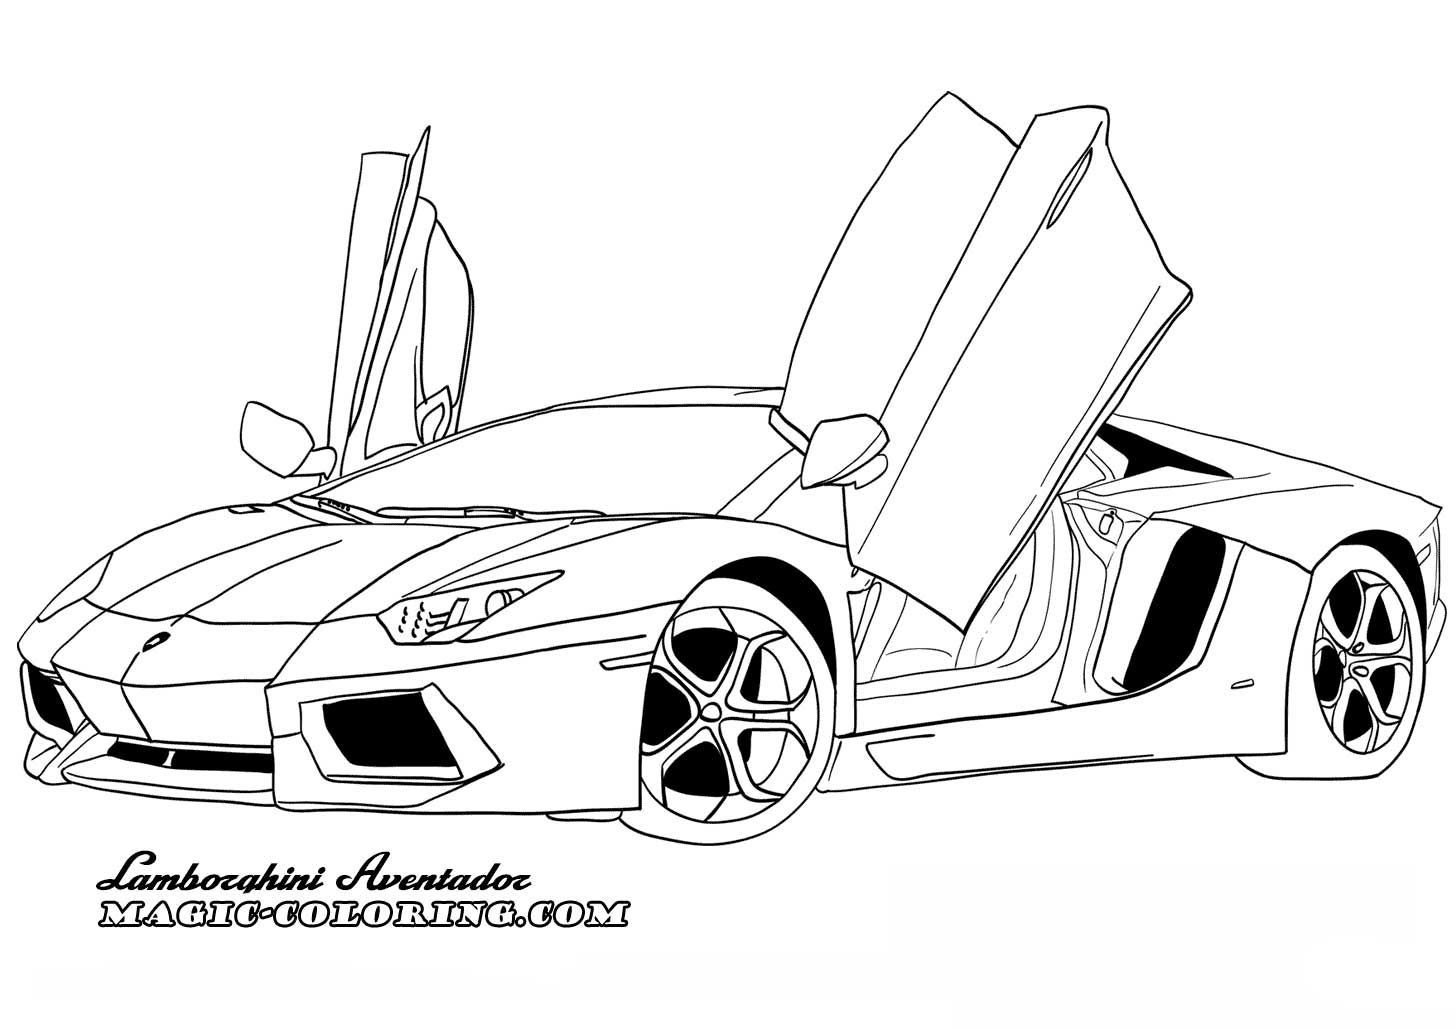 Lamborghini Aventador Coloring Page Cars Coloring Pages Truck Coloring Pages Race Car Coloring Pages